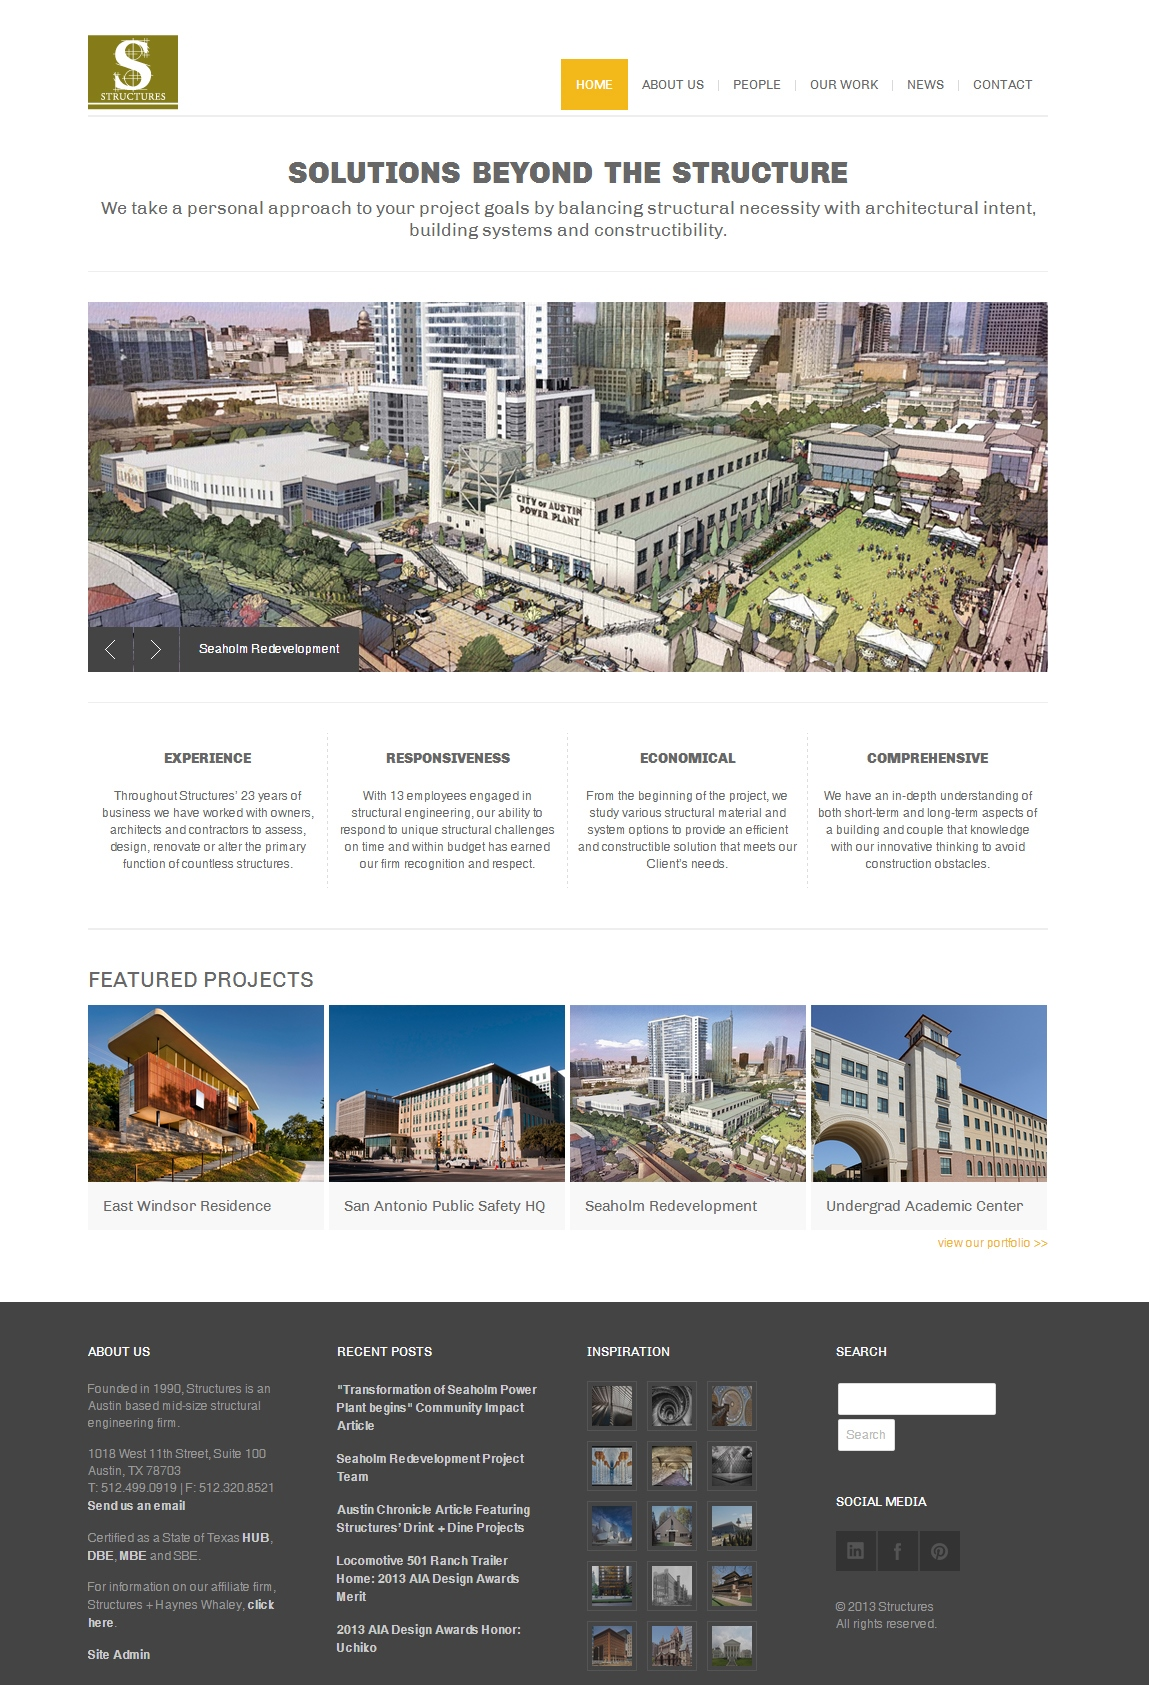 Introducing the new structurestx.com